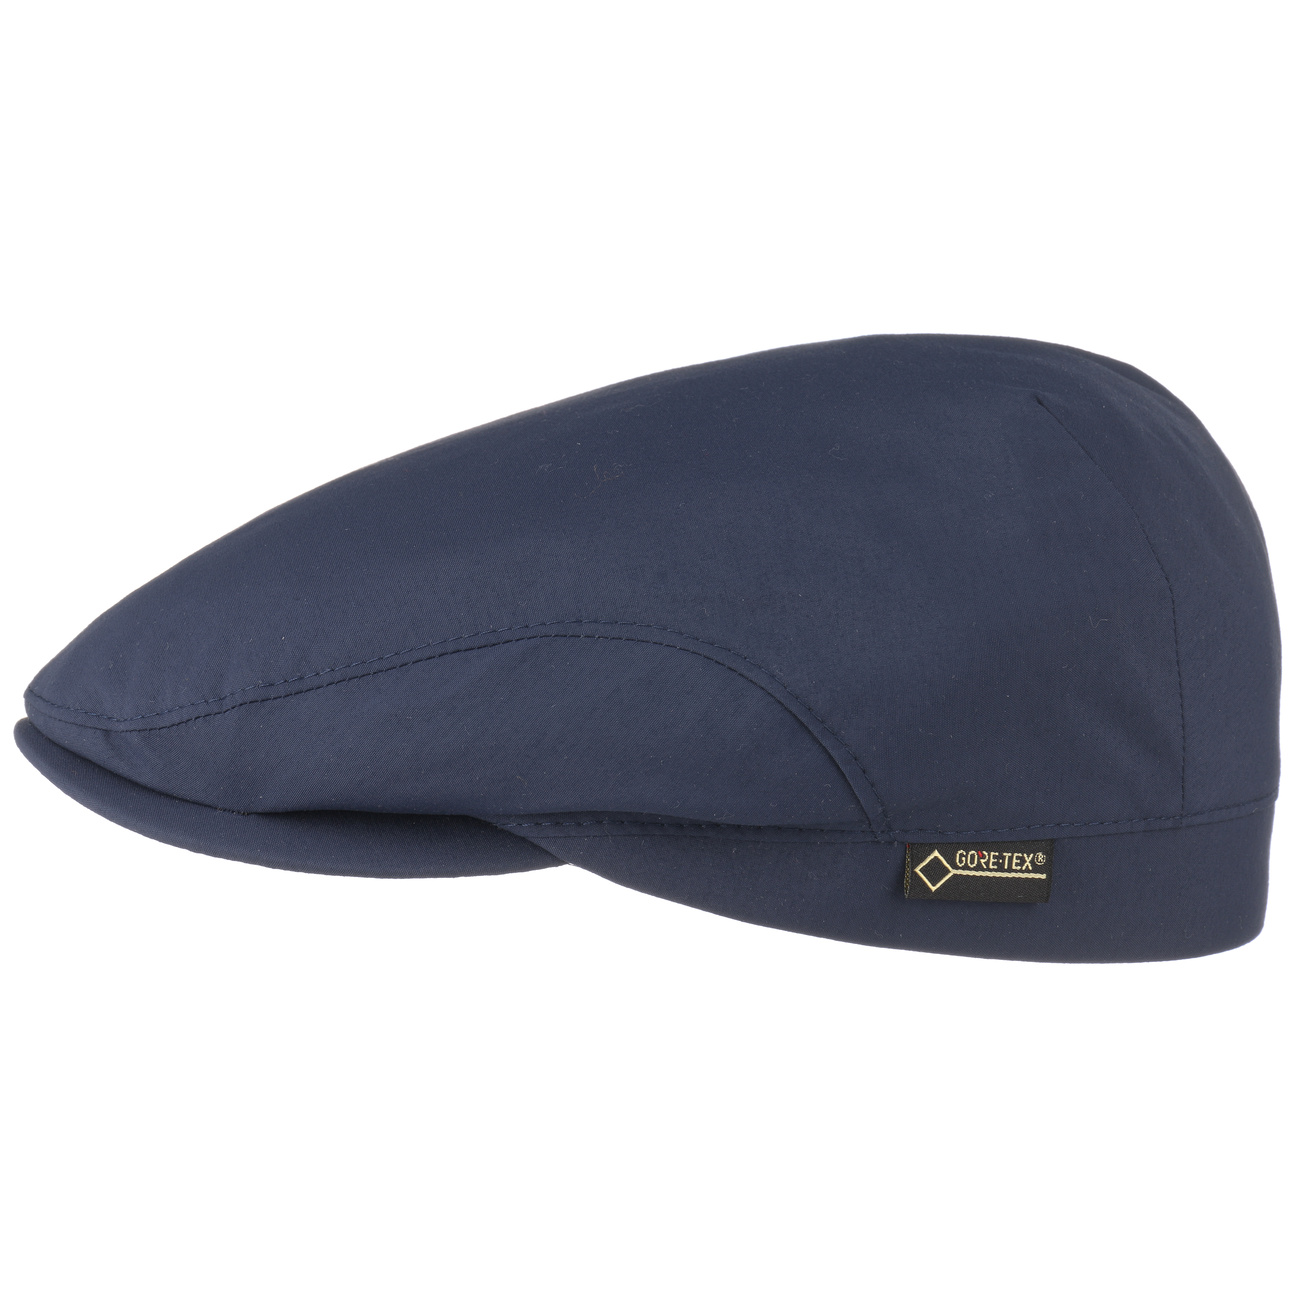 gore-tex-protect-light-flatcap-by-lierys-regencap